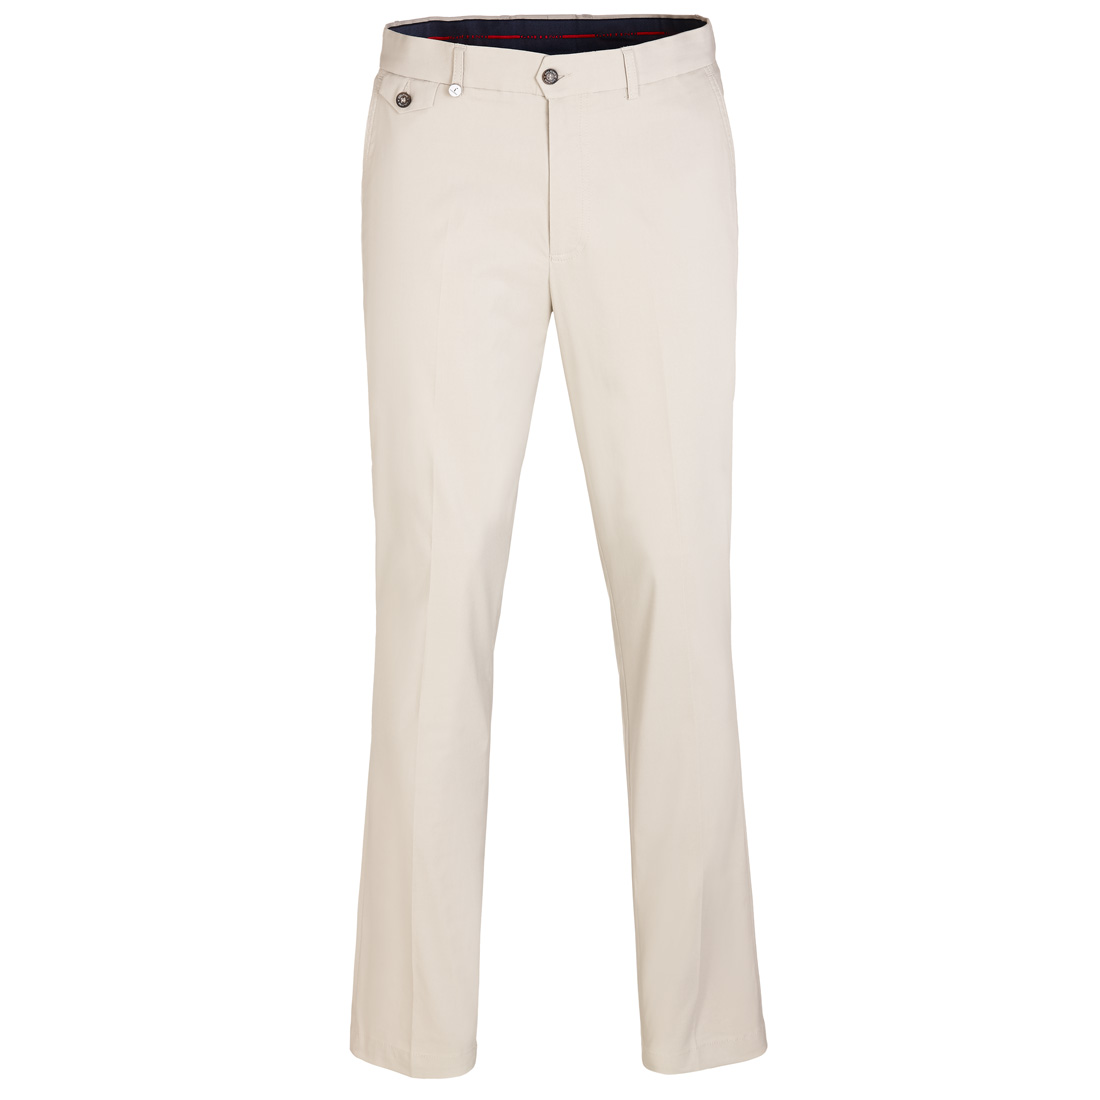 Baumwoll Golfhose Techno Stretch in Slim Fit